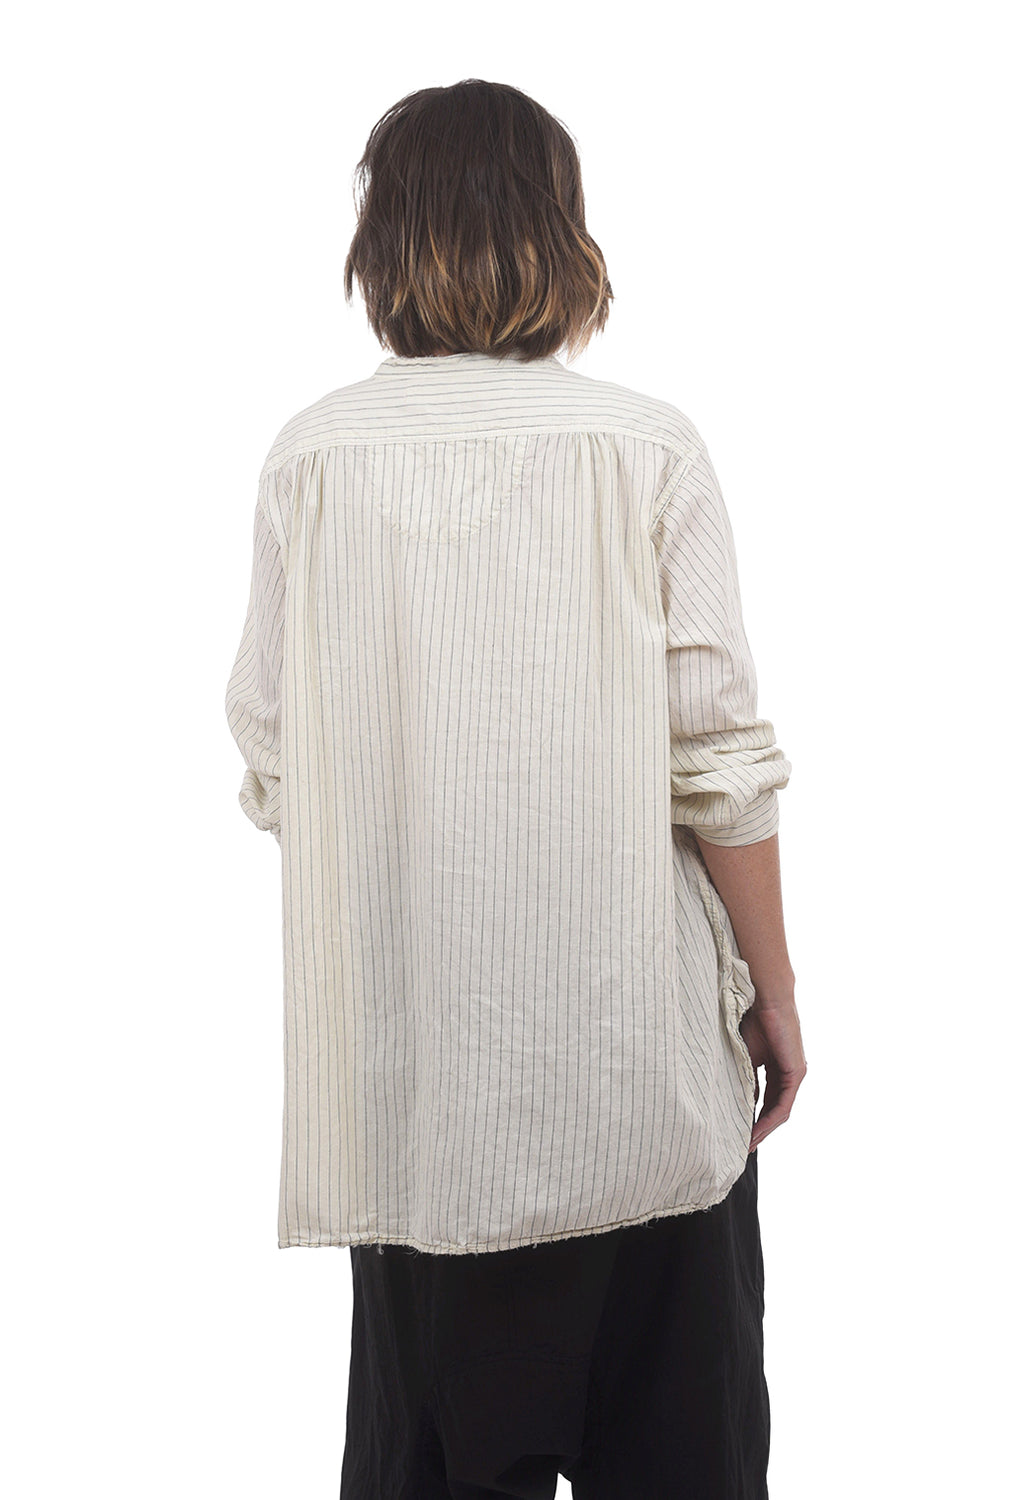 Magnolia Pearl Hand-Block Idgy Shirt, George Stripe One Size White